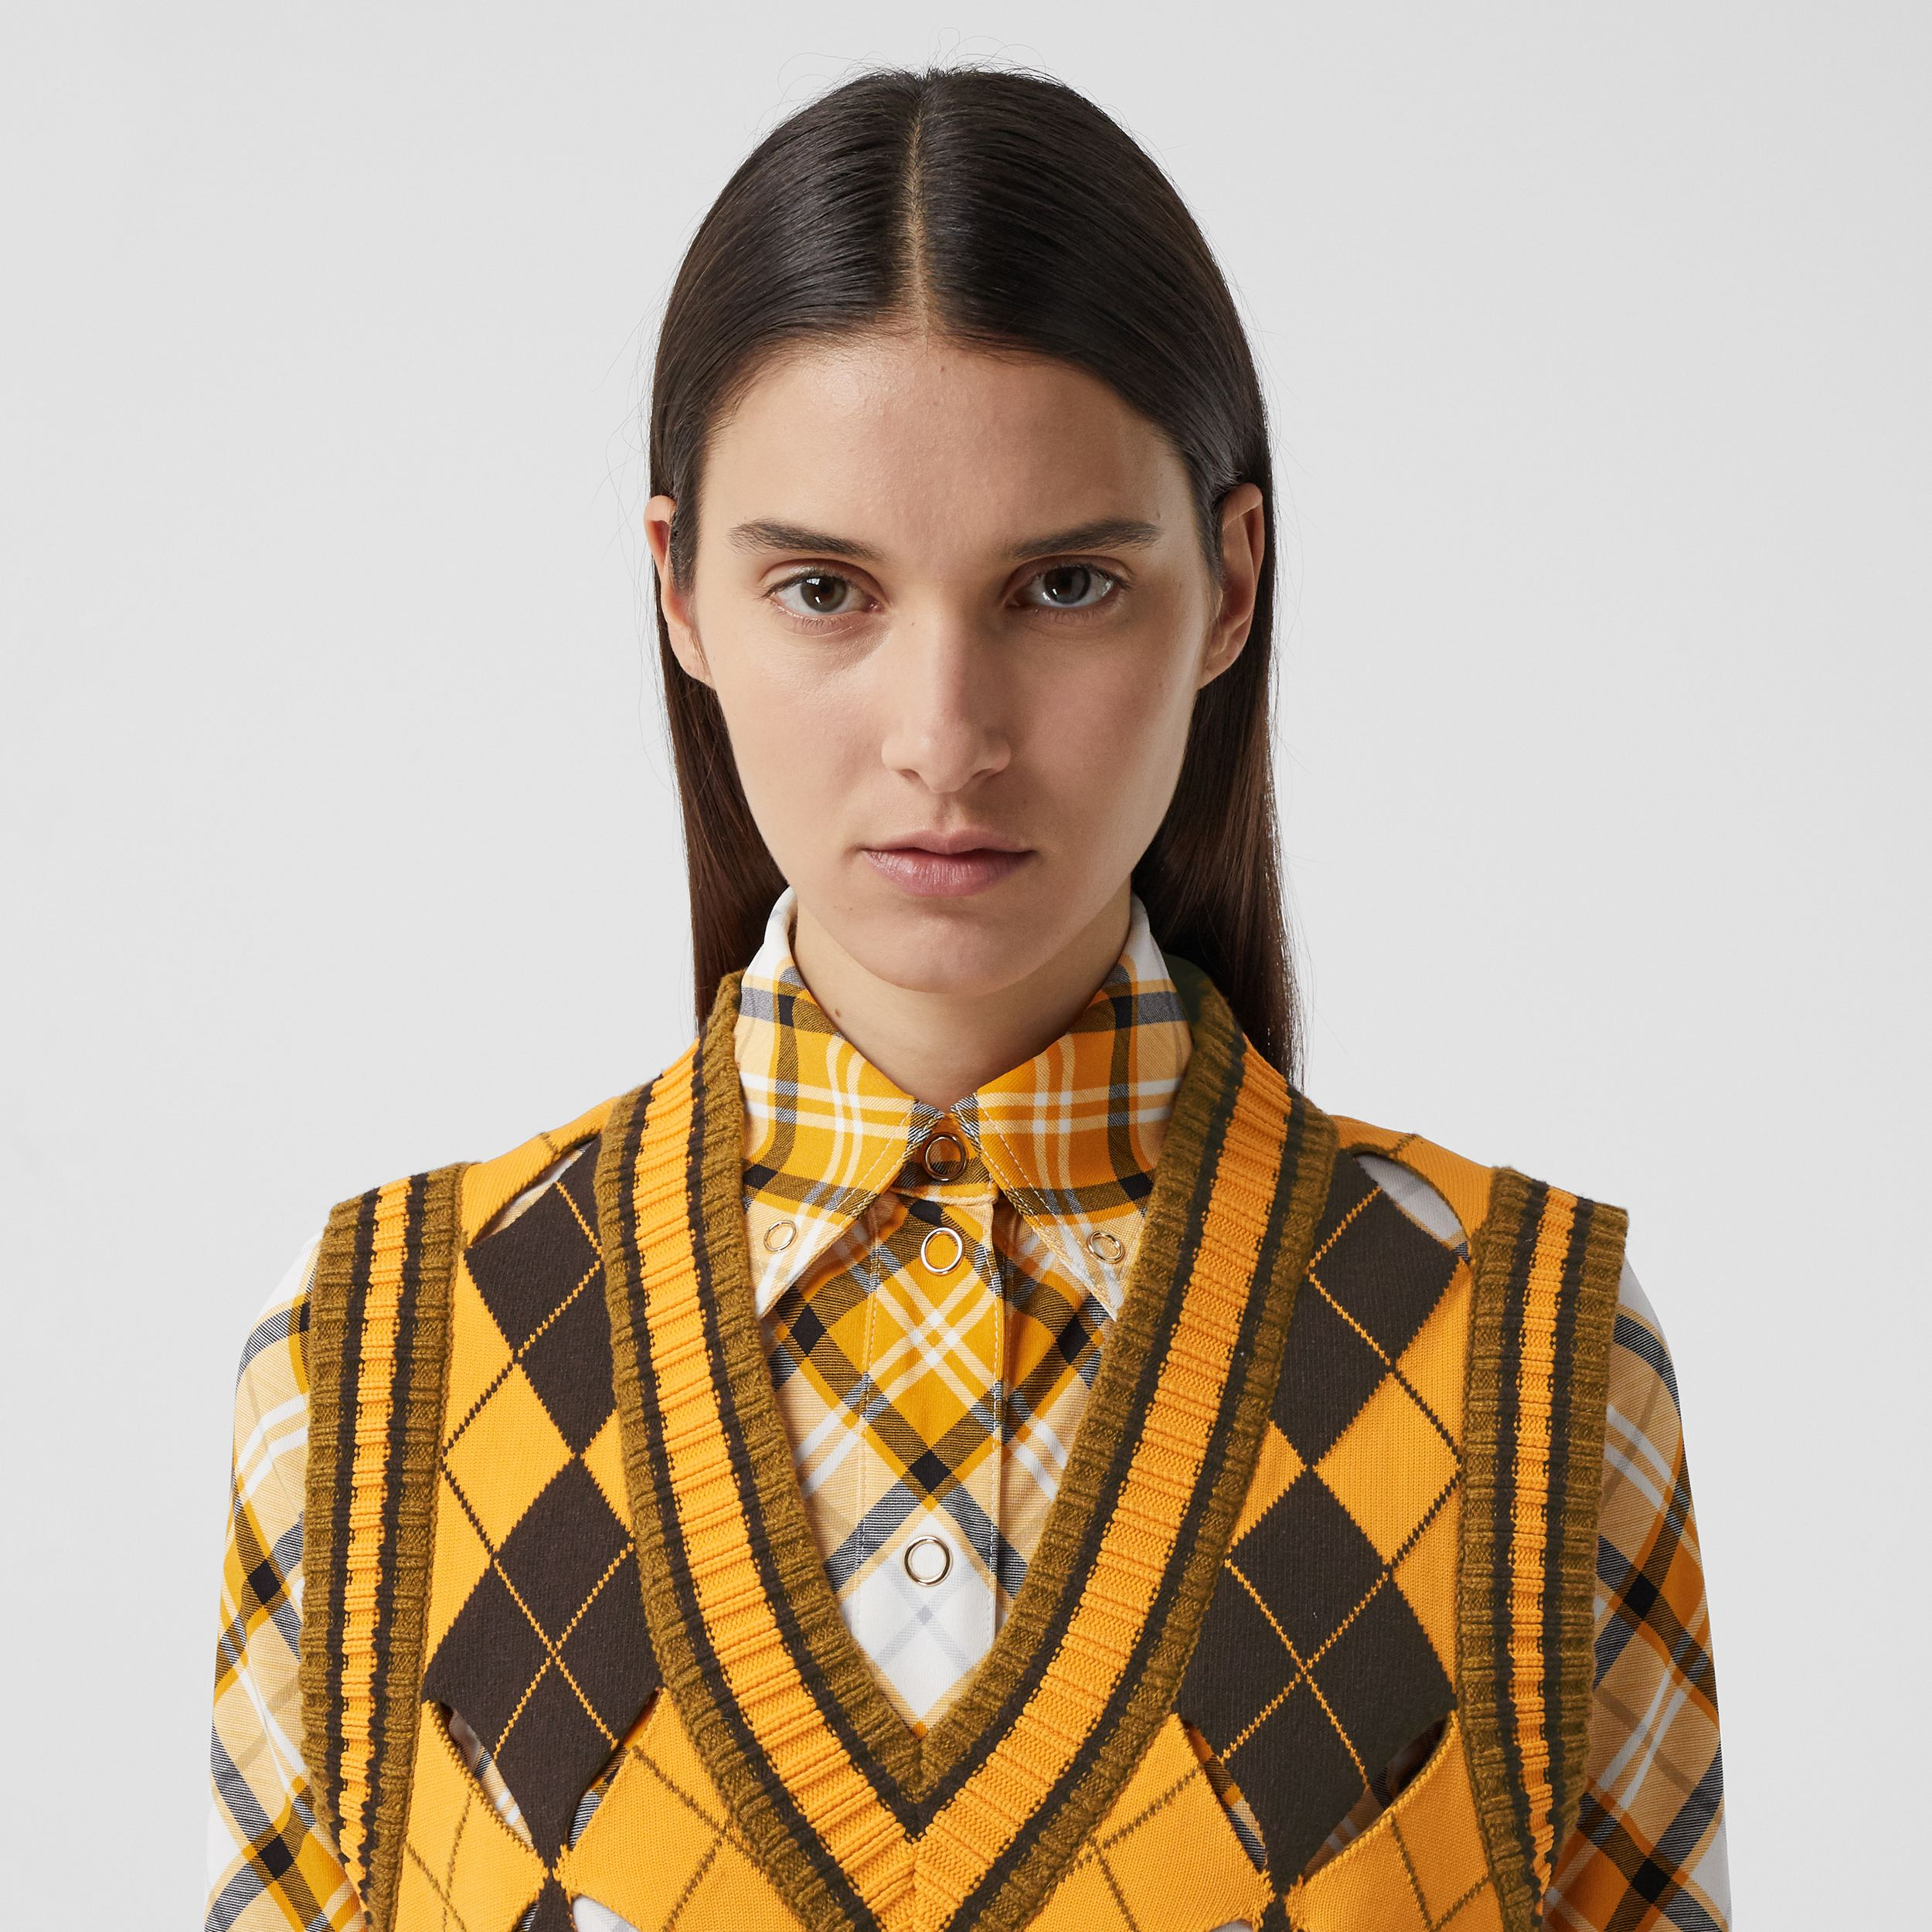 Cut-out Detail Argyle Technical Wool Jacquard Vest in Bright Orange - Women | Burberry - 2